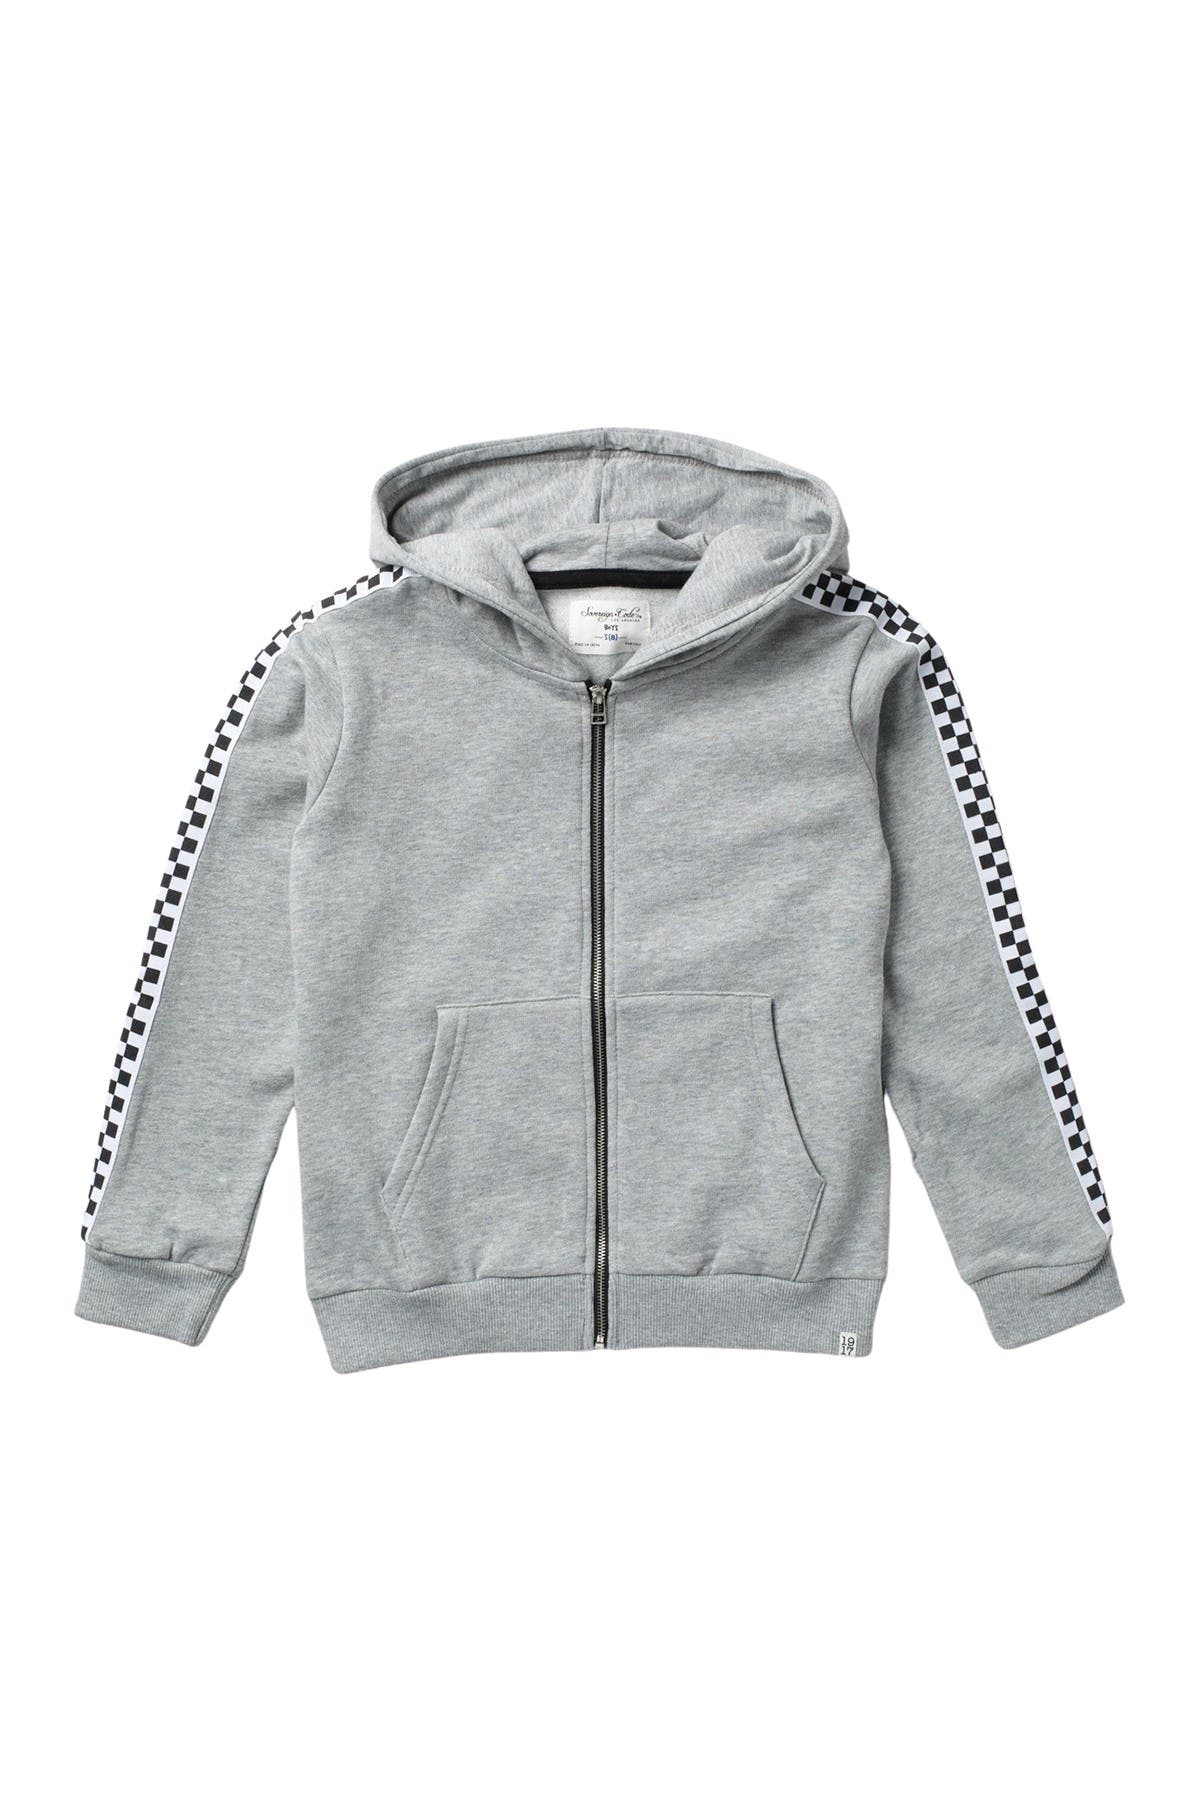 Sovereign Code King Check Hooded Jacket